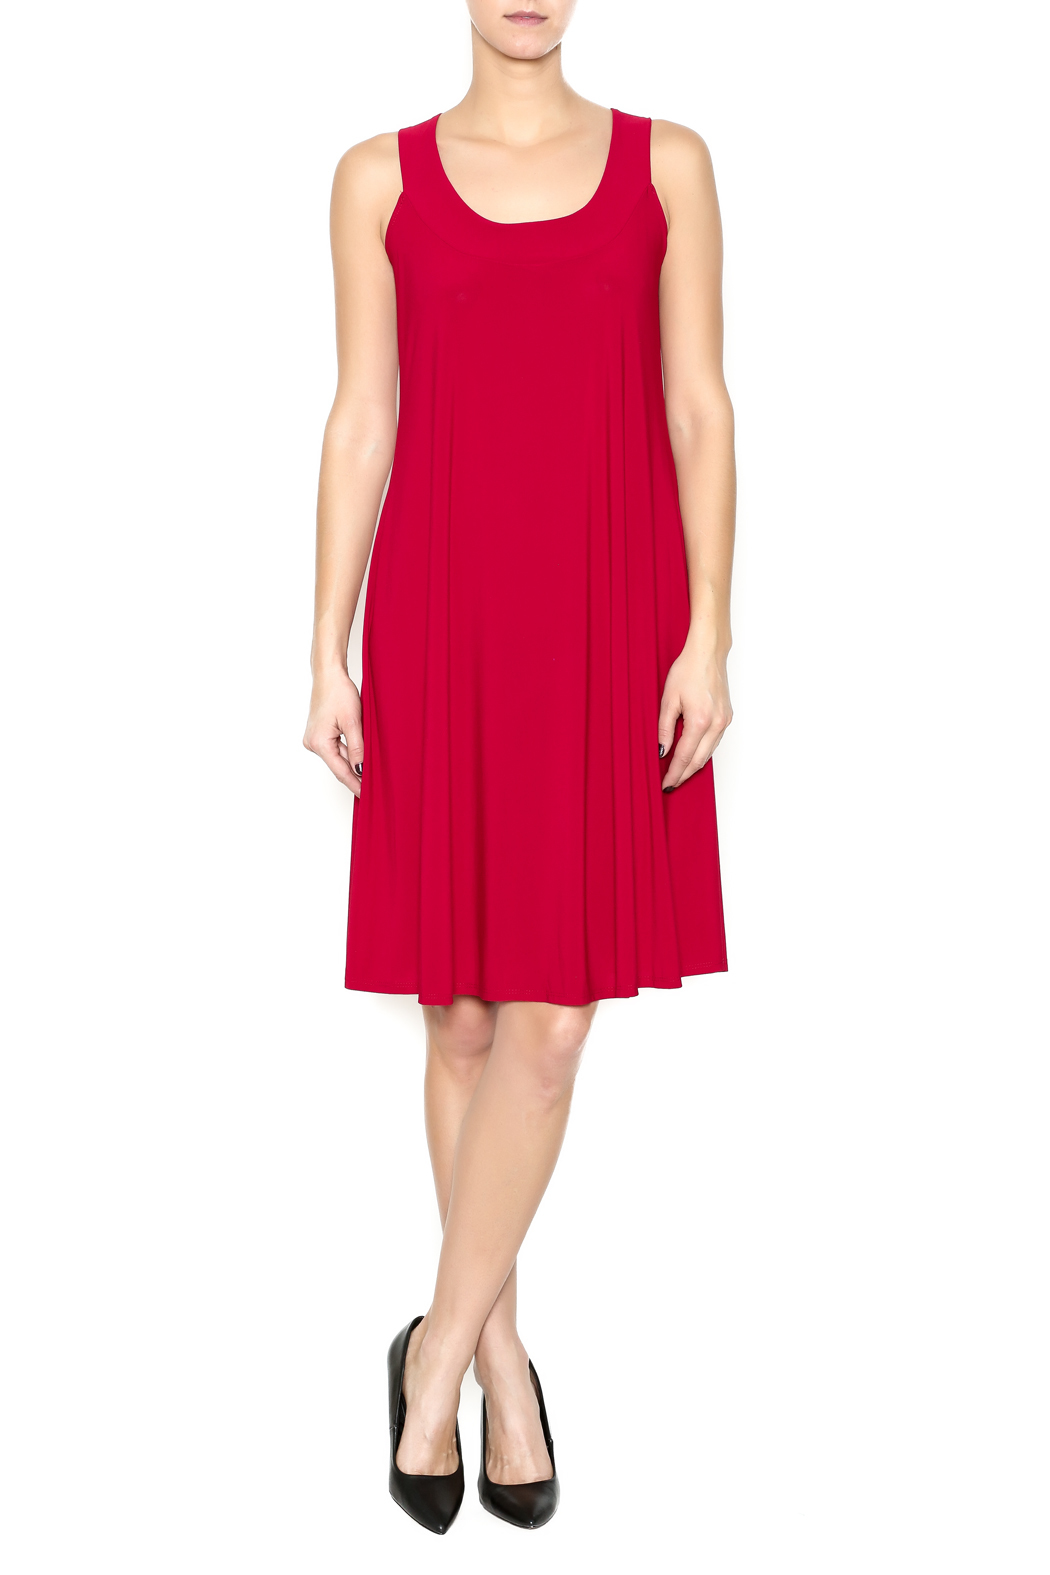 Ellen Parker Red Trapeze Dress - Front Full Image